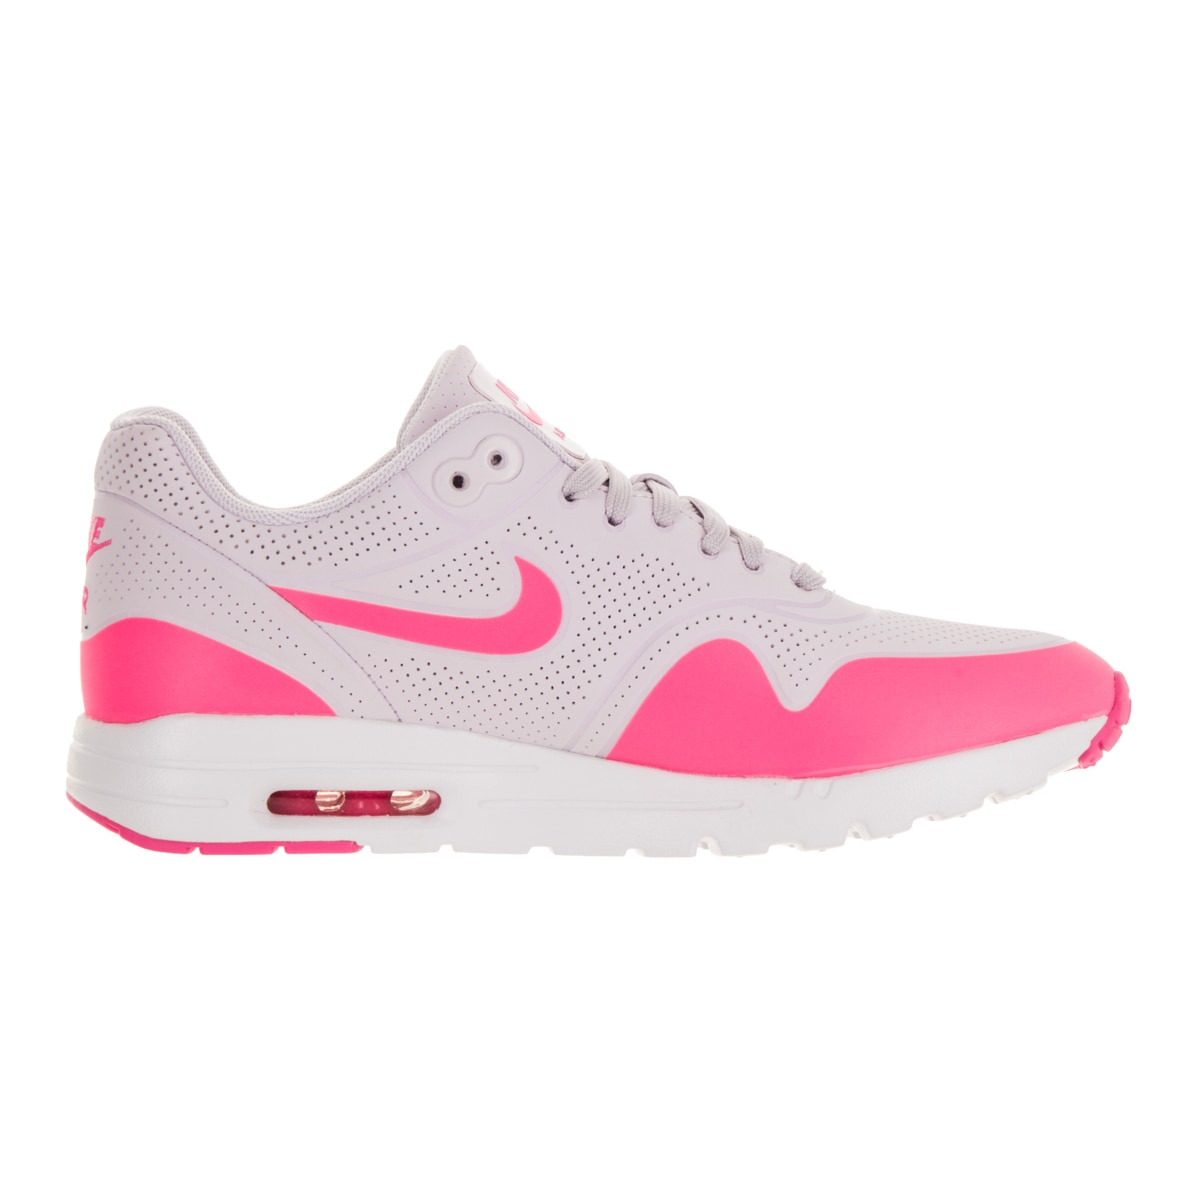 best website 855d3 7413c Shop Nike Women s Air Max 1 Ultra Moire Bleached Lilac Pink Blast White  Running Shoe - Free Shipping Today - Overstock - 13343861